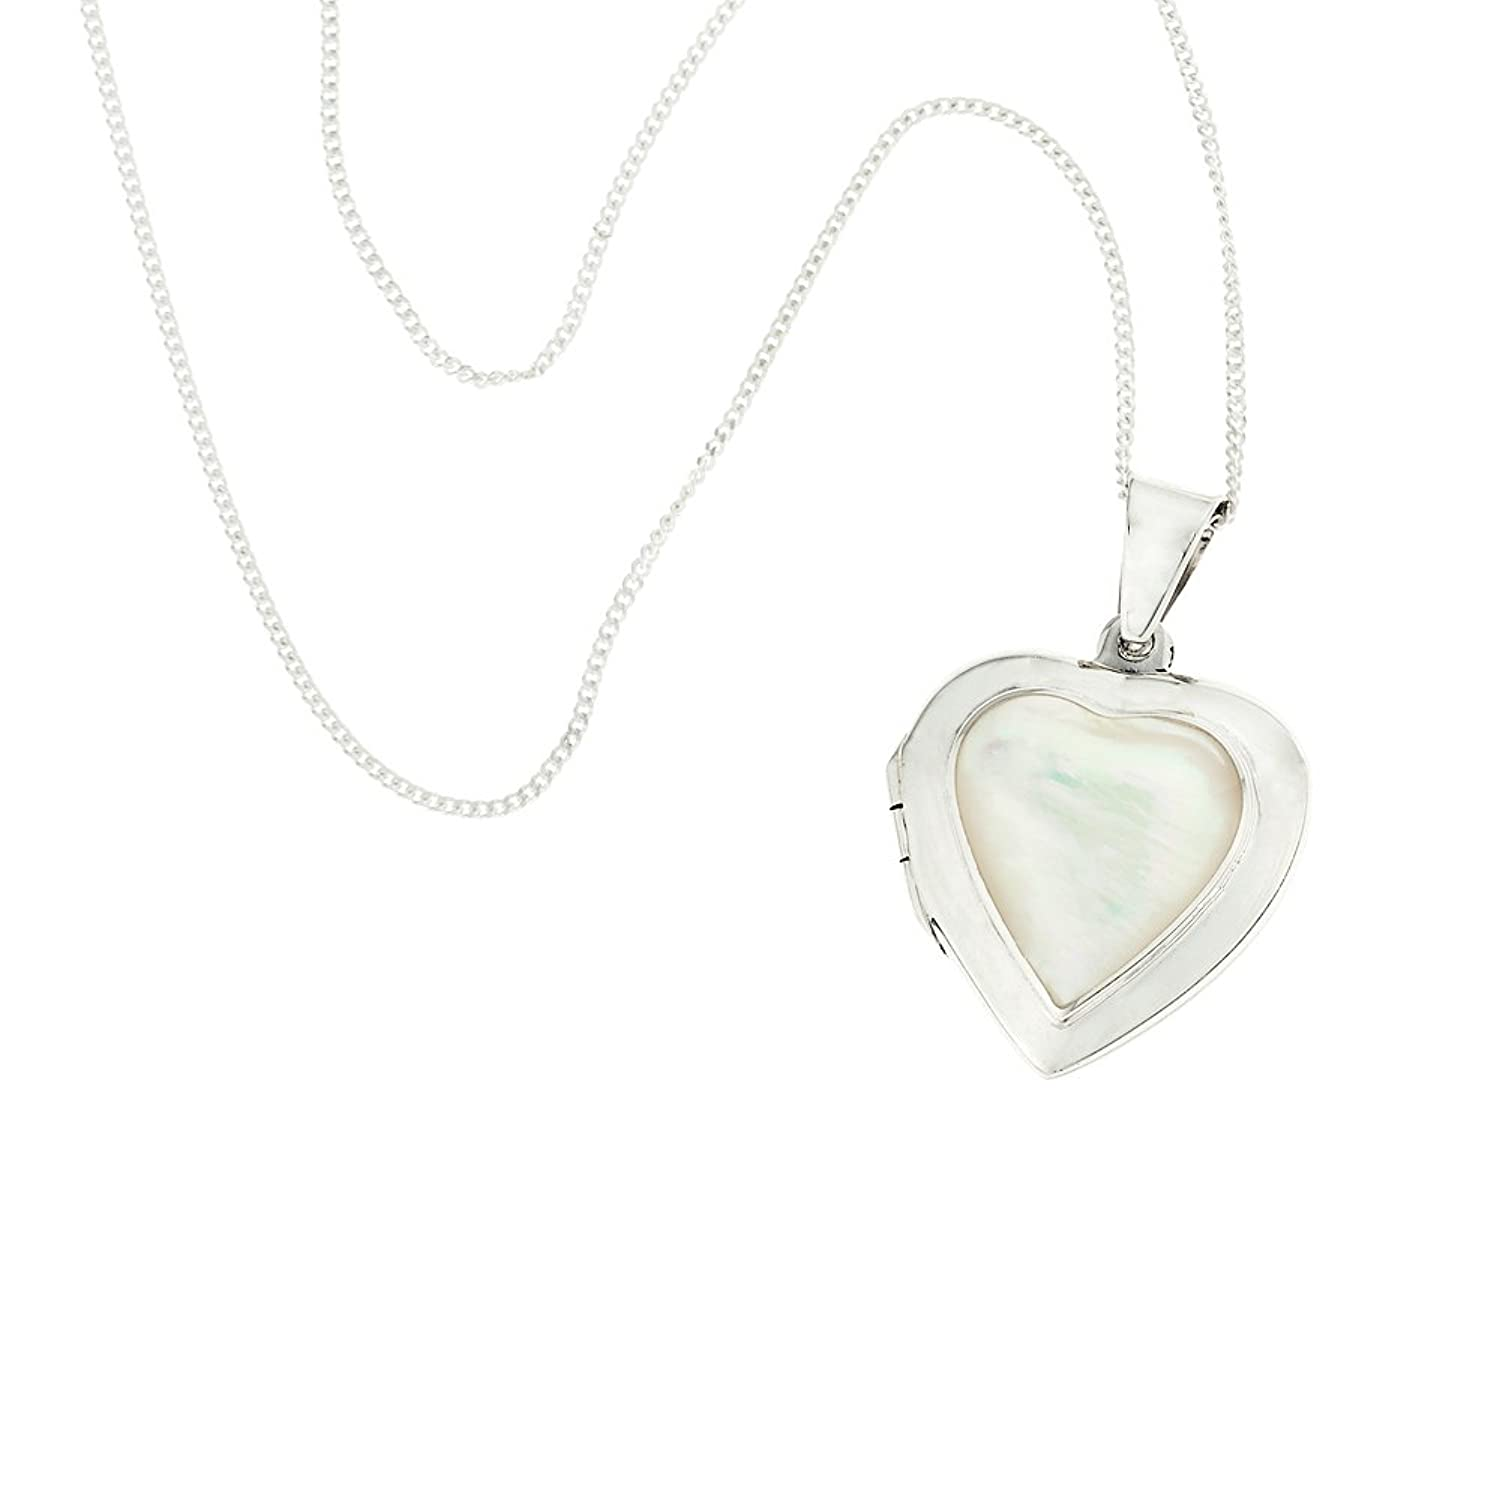 Ornami Mother of Pearl Heart Sterling Silver Locket Necklace with 46 cm Chain Z4E3F